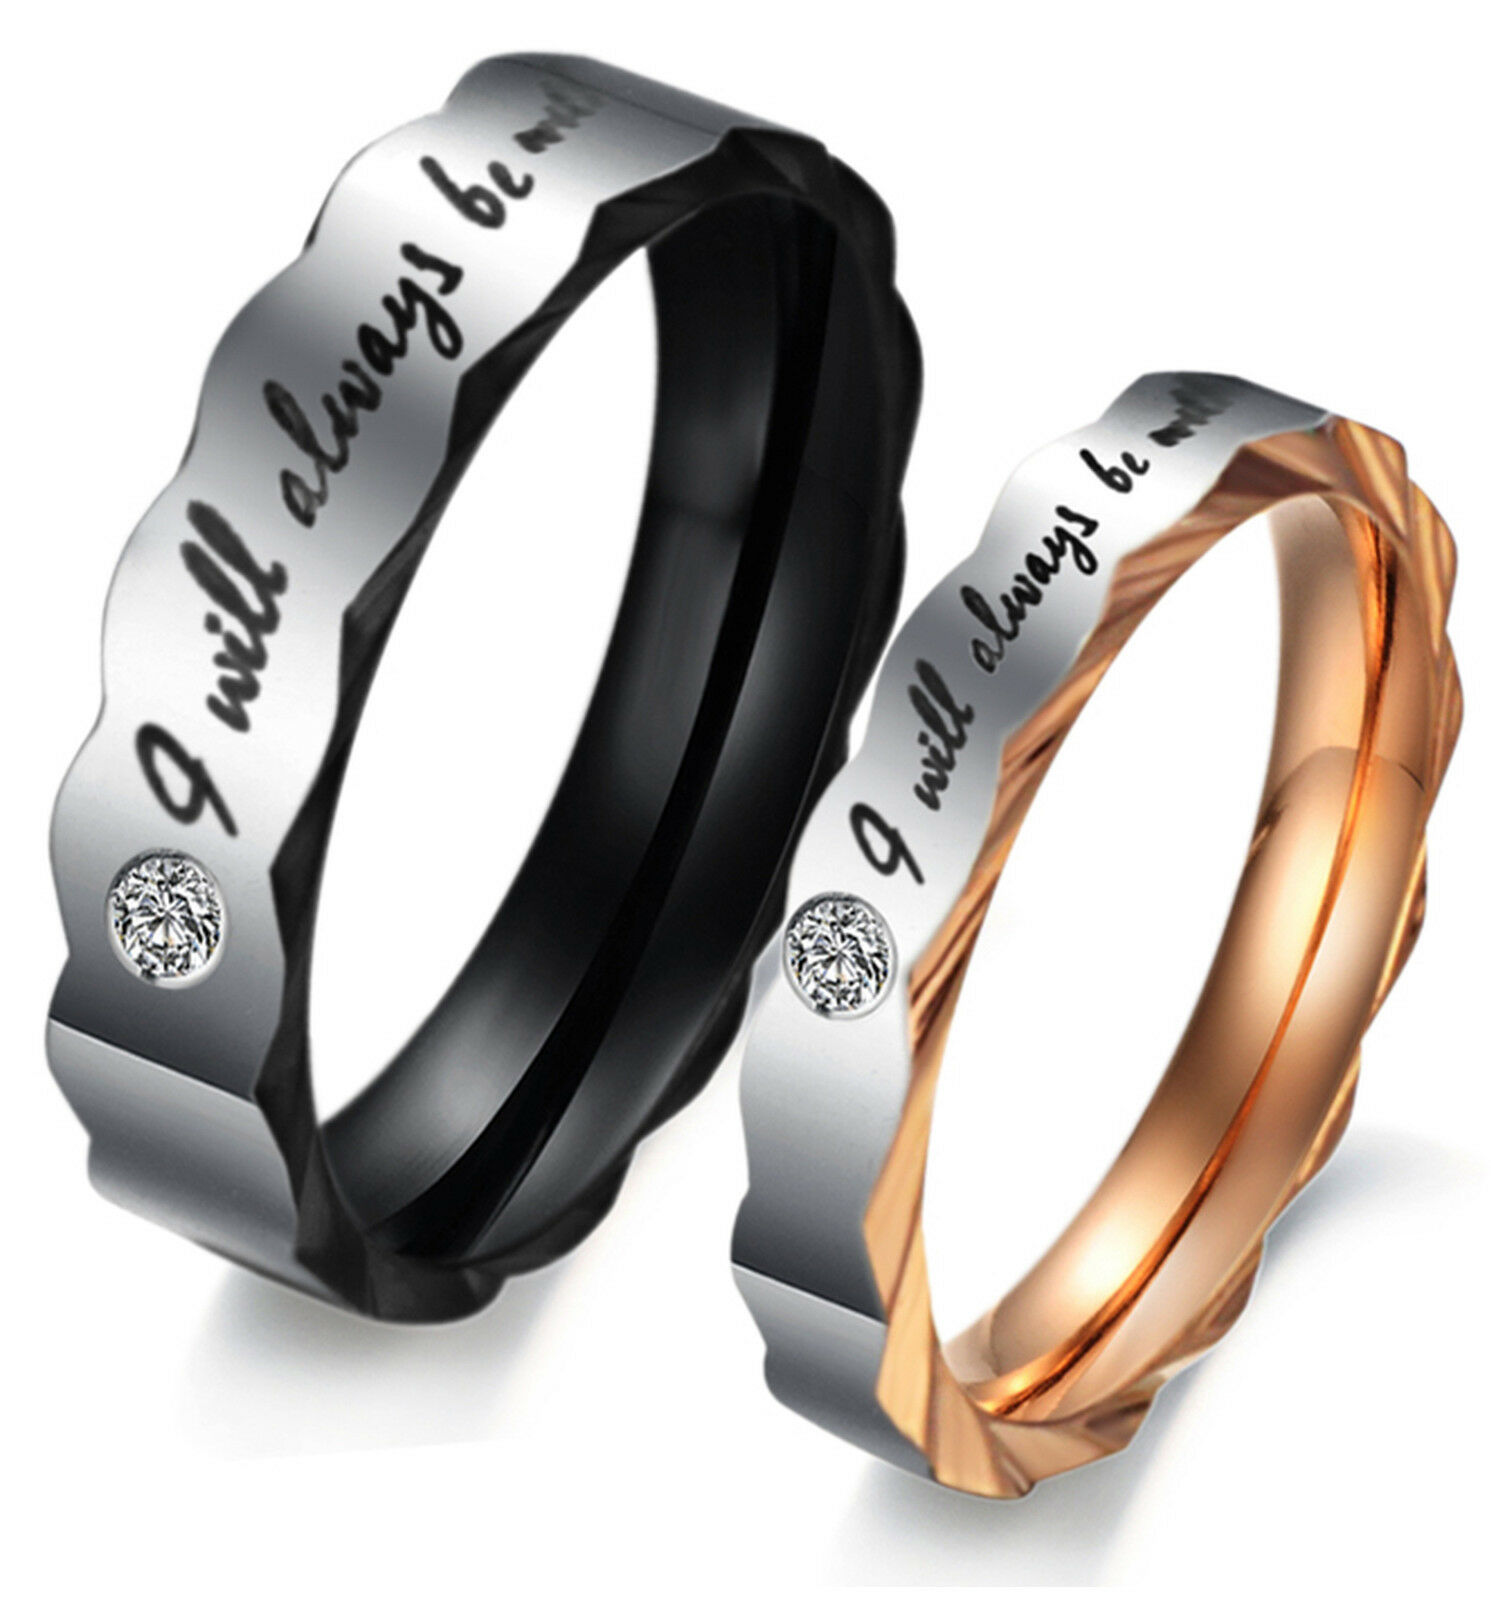 """Couple's Matching Promise Ring """"Will always be with you"""" His or Her Wedding Band Fashion Jewelry"""